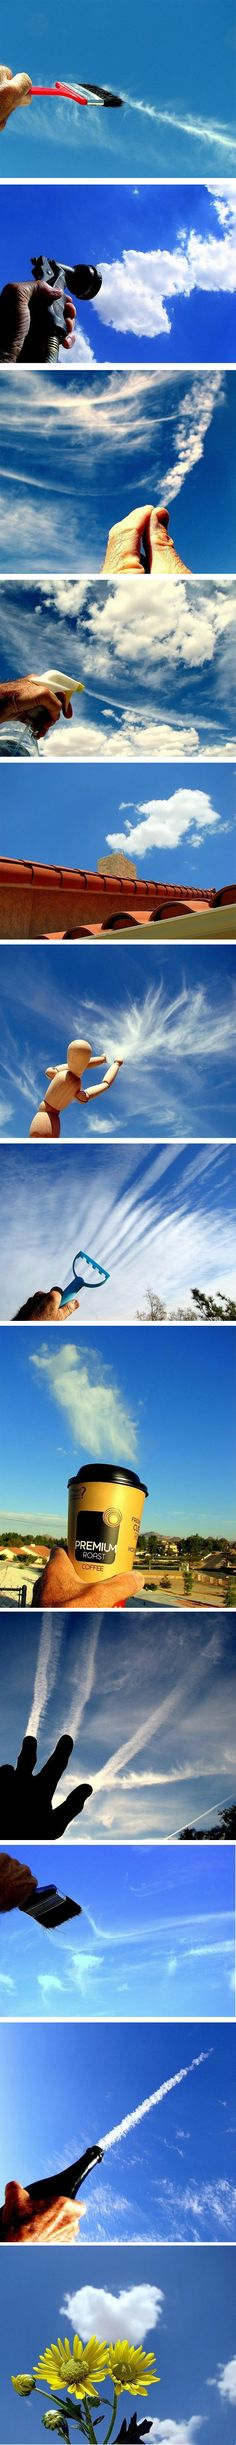 Forced perspective shots - Playing With Clouds Forced Perspective Photography, Perspective Photos, Experimental Photography, Creative Photography, Amazing Photography, Photography Tips, Artistic Photography, Digital Photography, Cool Pictures